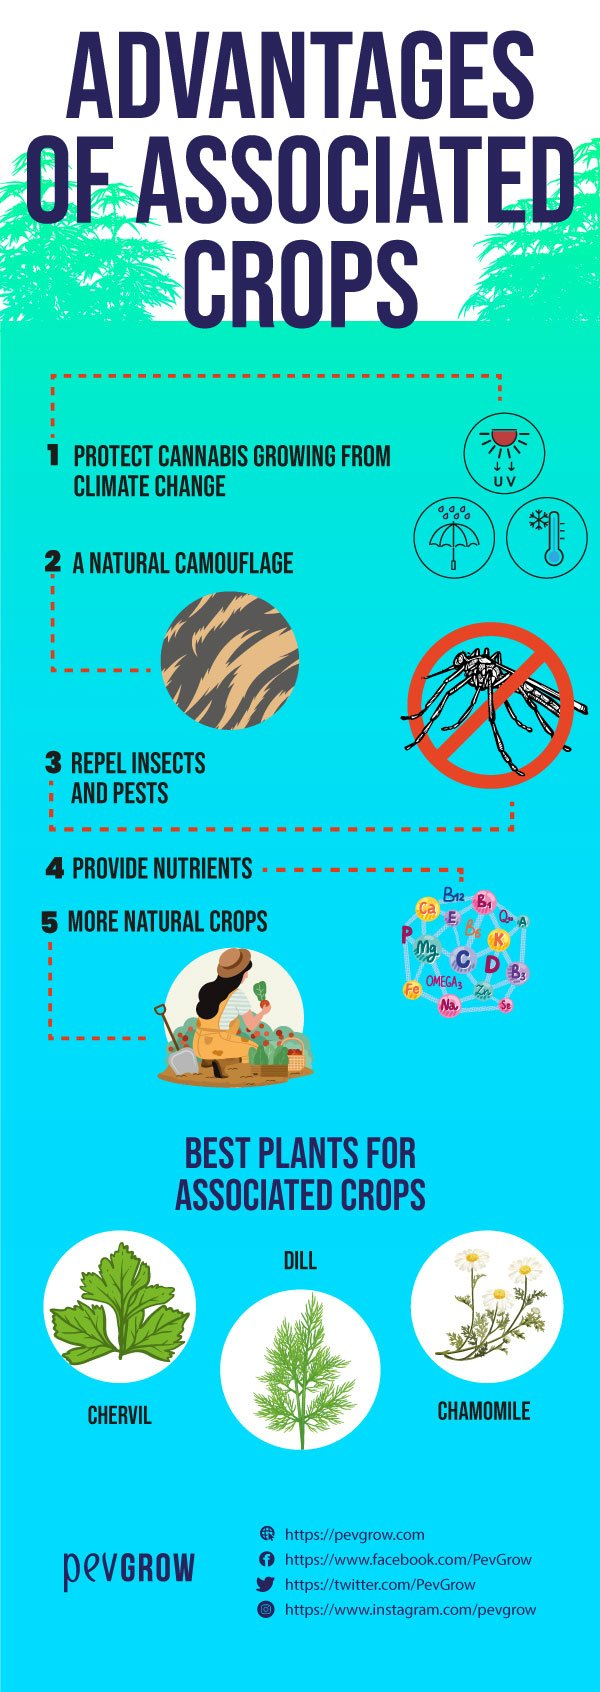 Image on the benefits of intercropping